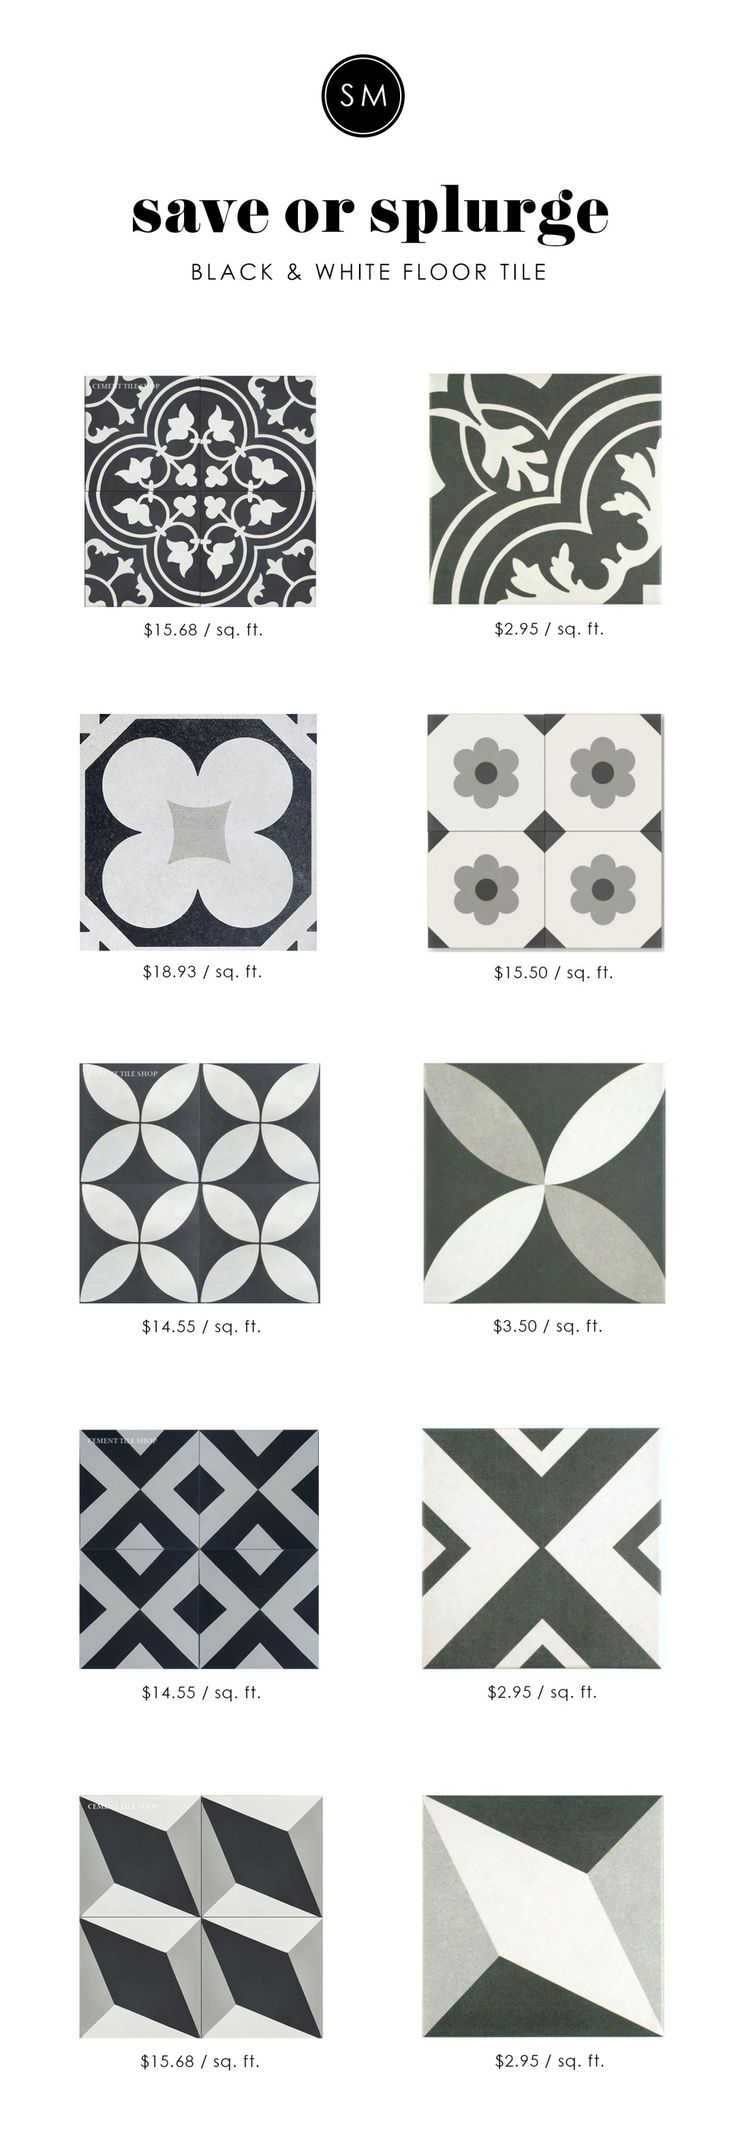 Black and white bathroom ideas pinterest - Save Or Splurge Black White Floor Tile